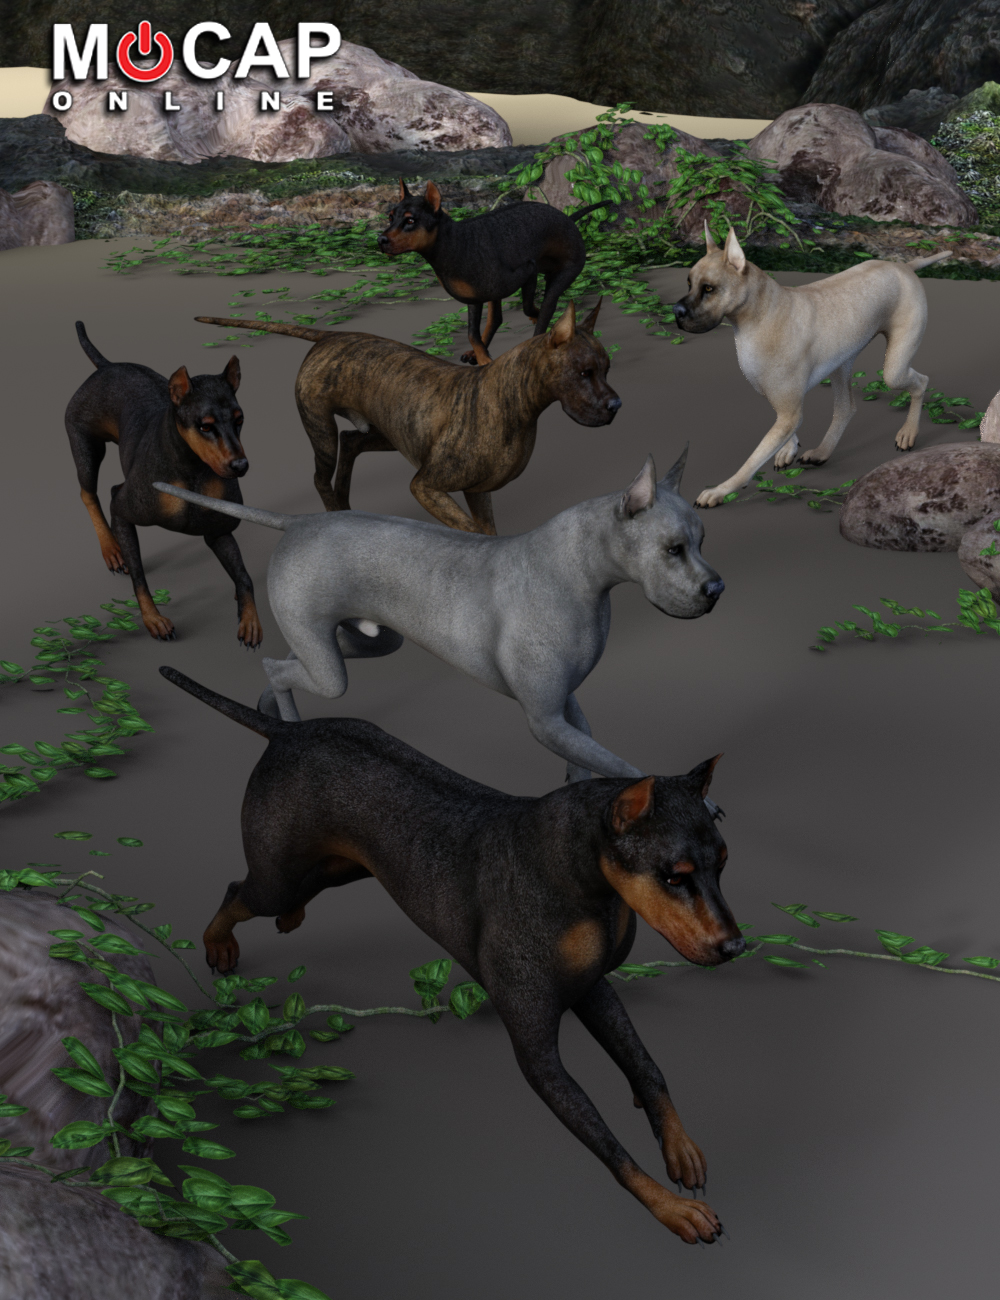 Dog 8 Animation Cycles - Base and Great Dane by: Mocap Online, 3D Models by Daz 3D